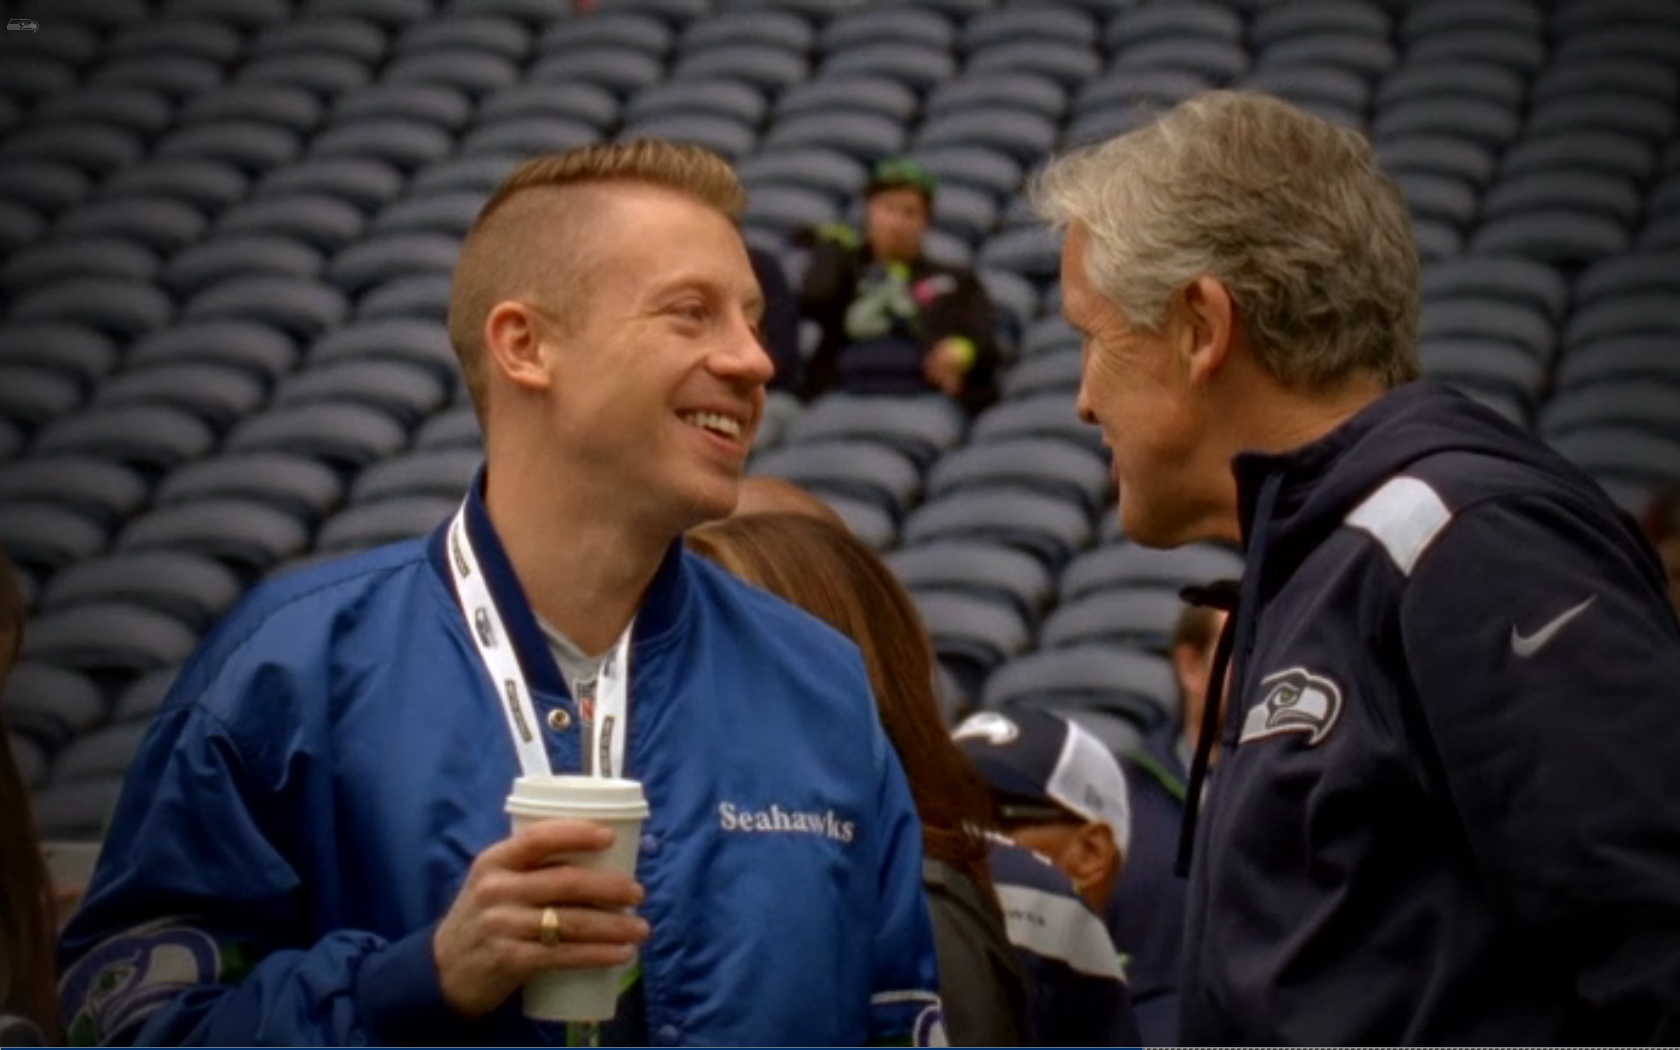 Watch Seahawks Fans Chris Cornell, Macklemore, Ann Wilson Get Psyched For The Super Bowl